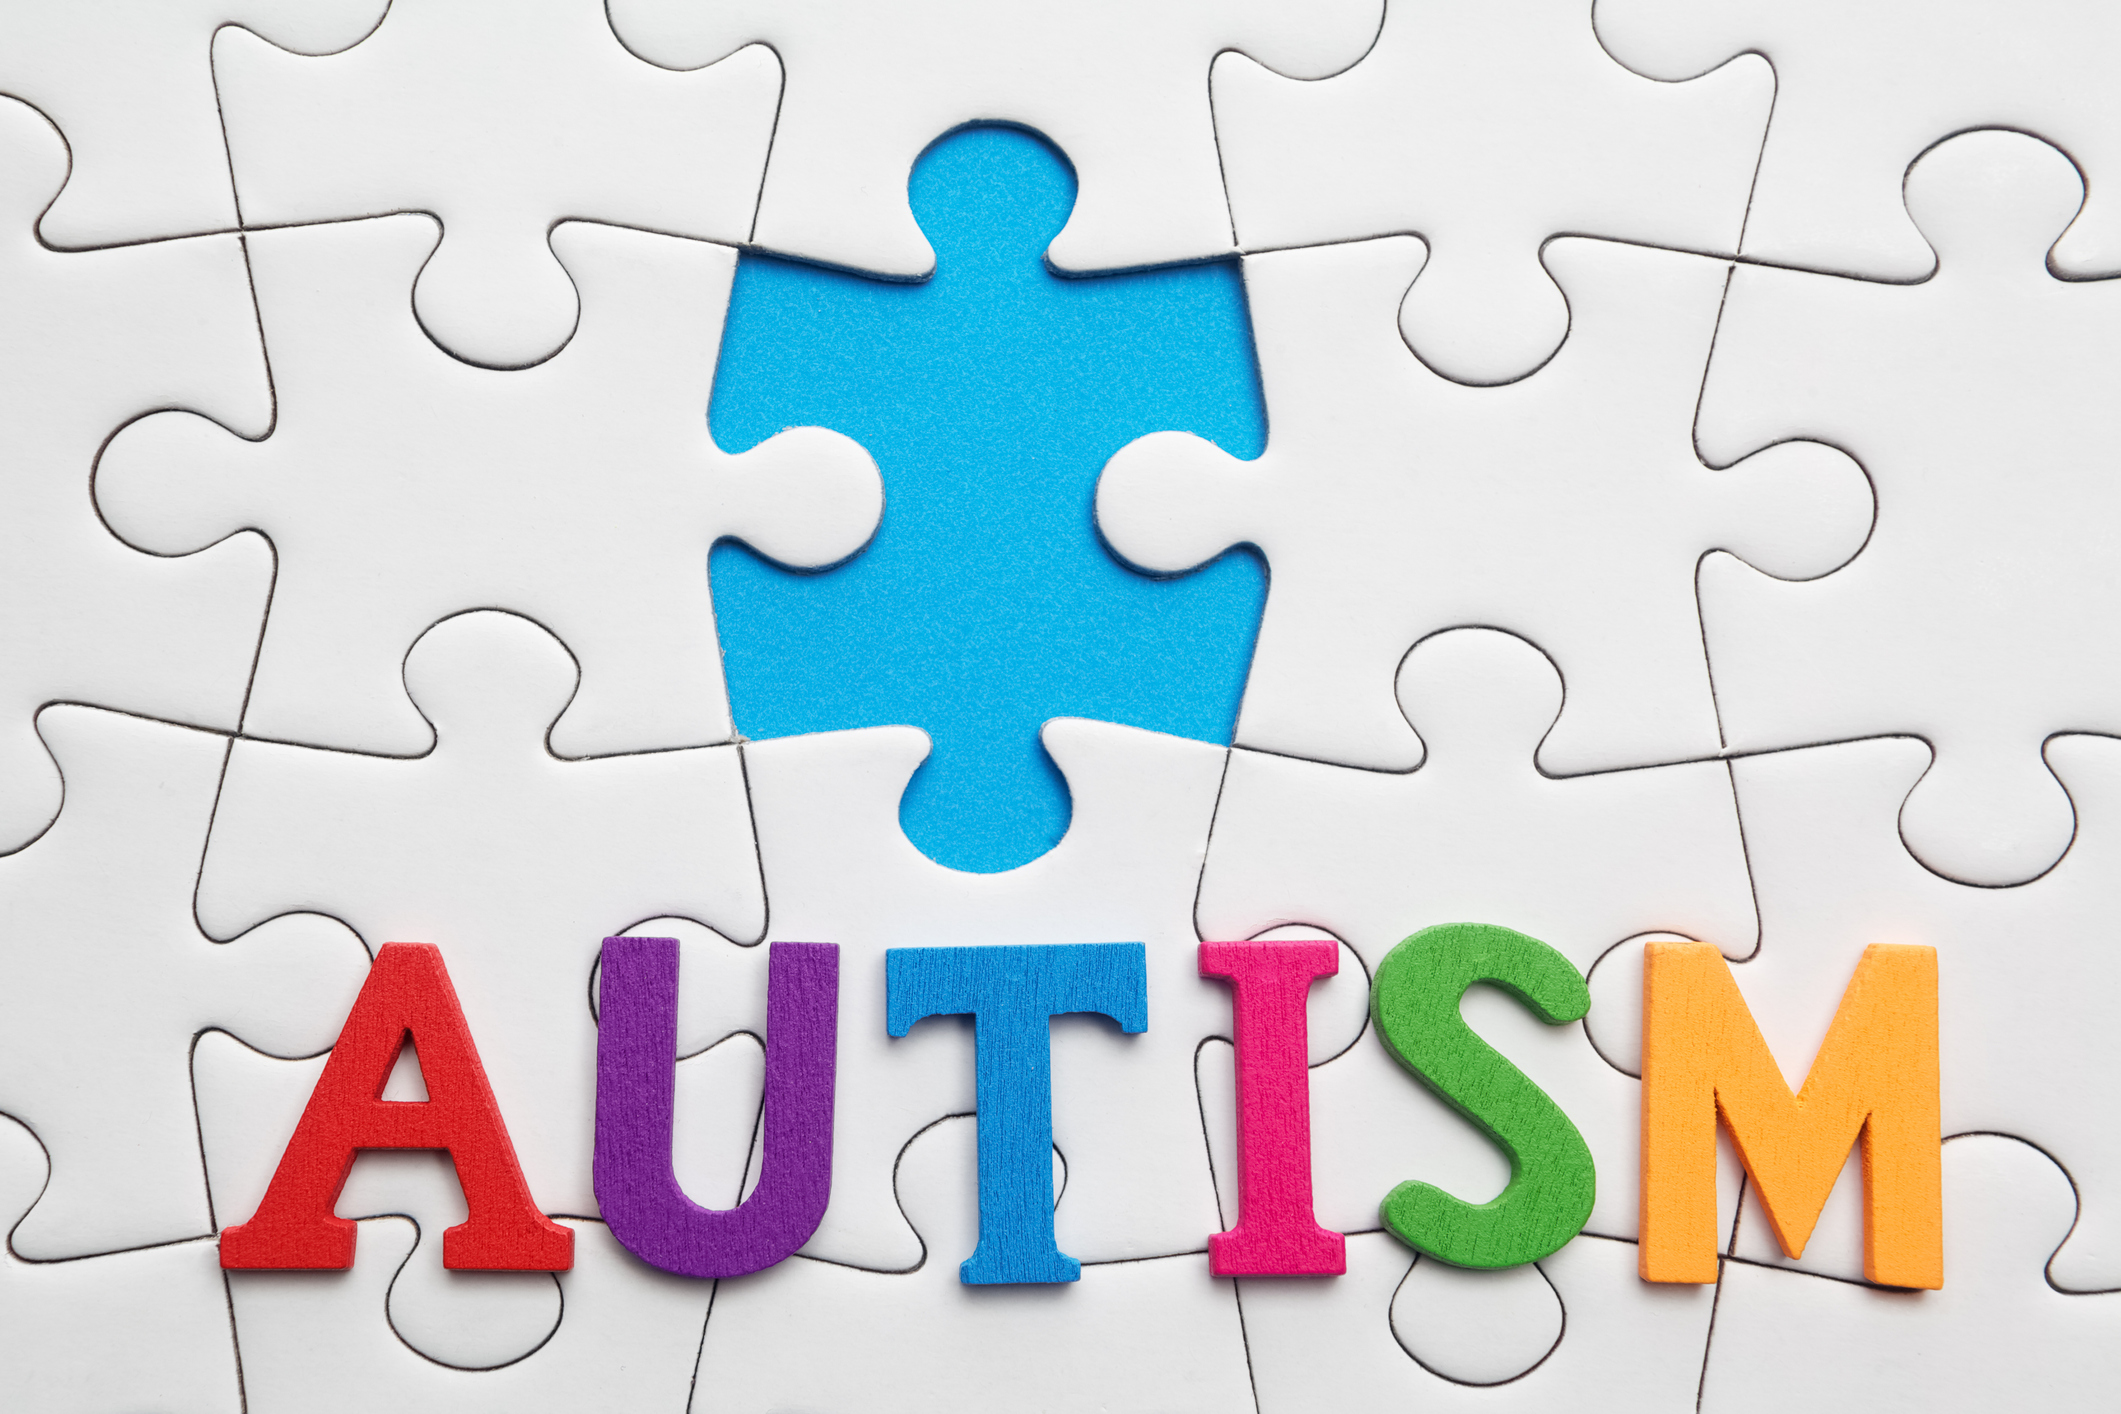 Autistic people often struggle to fit in